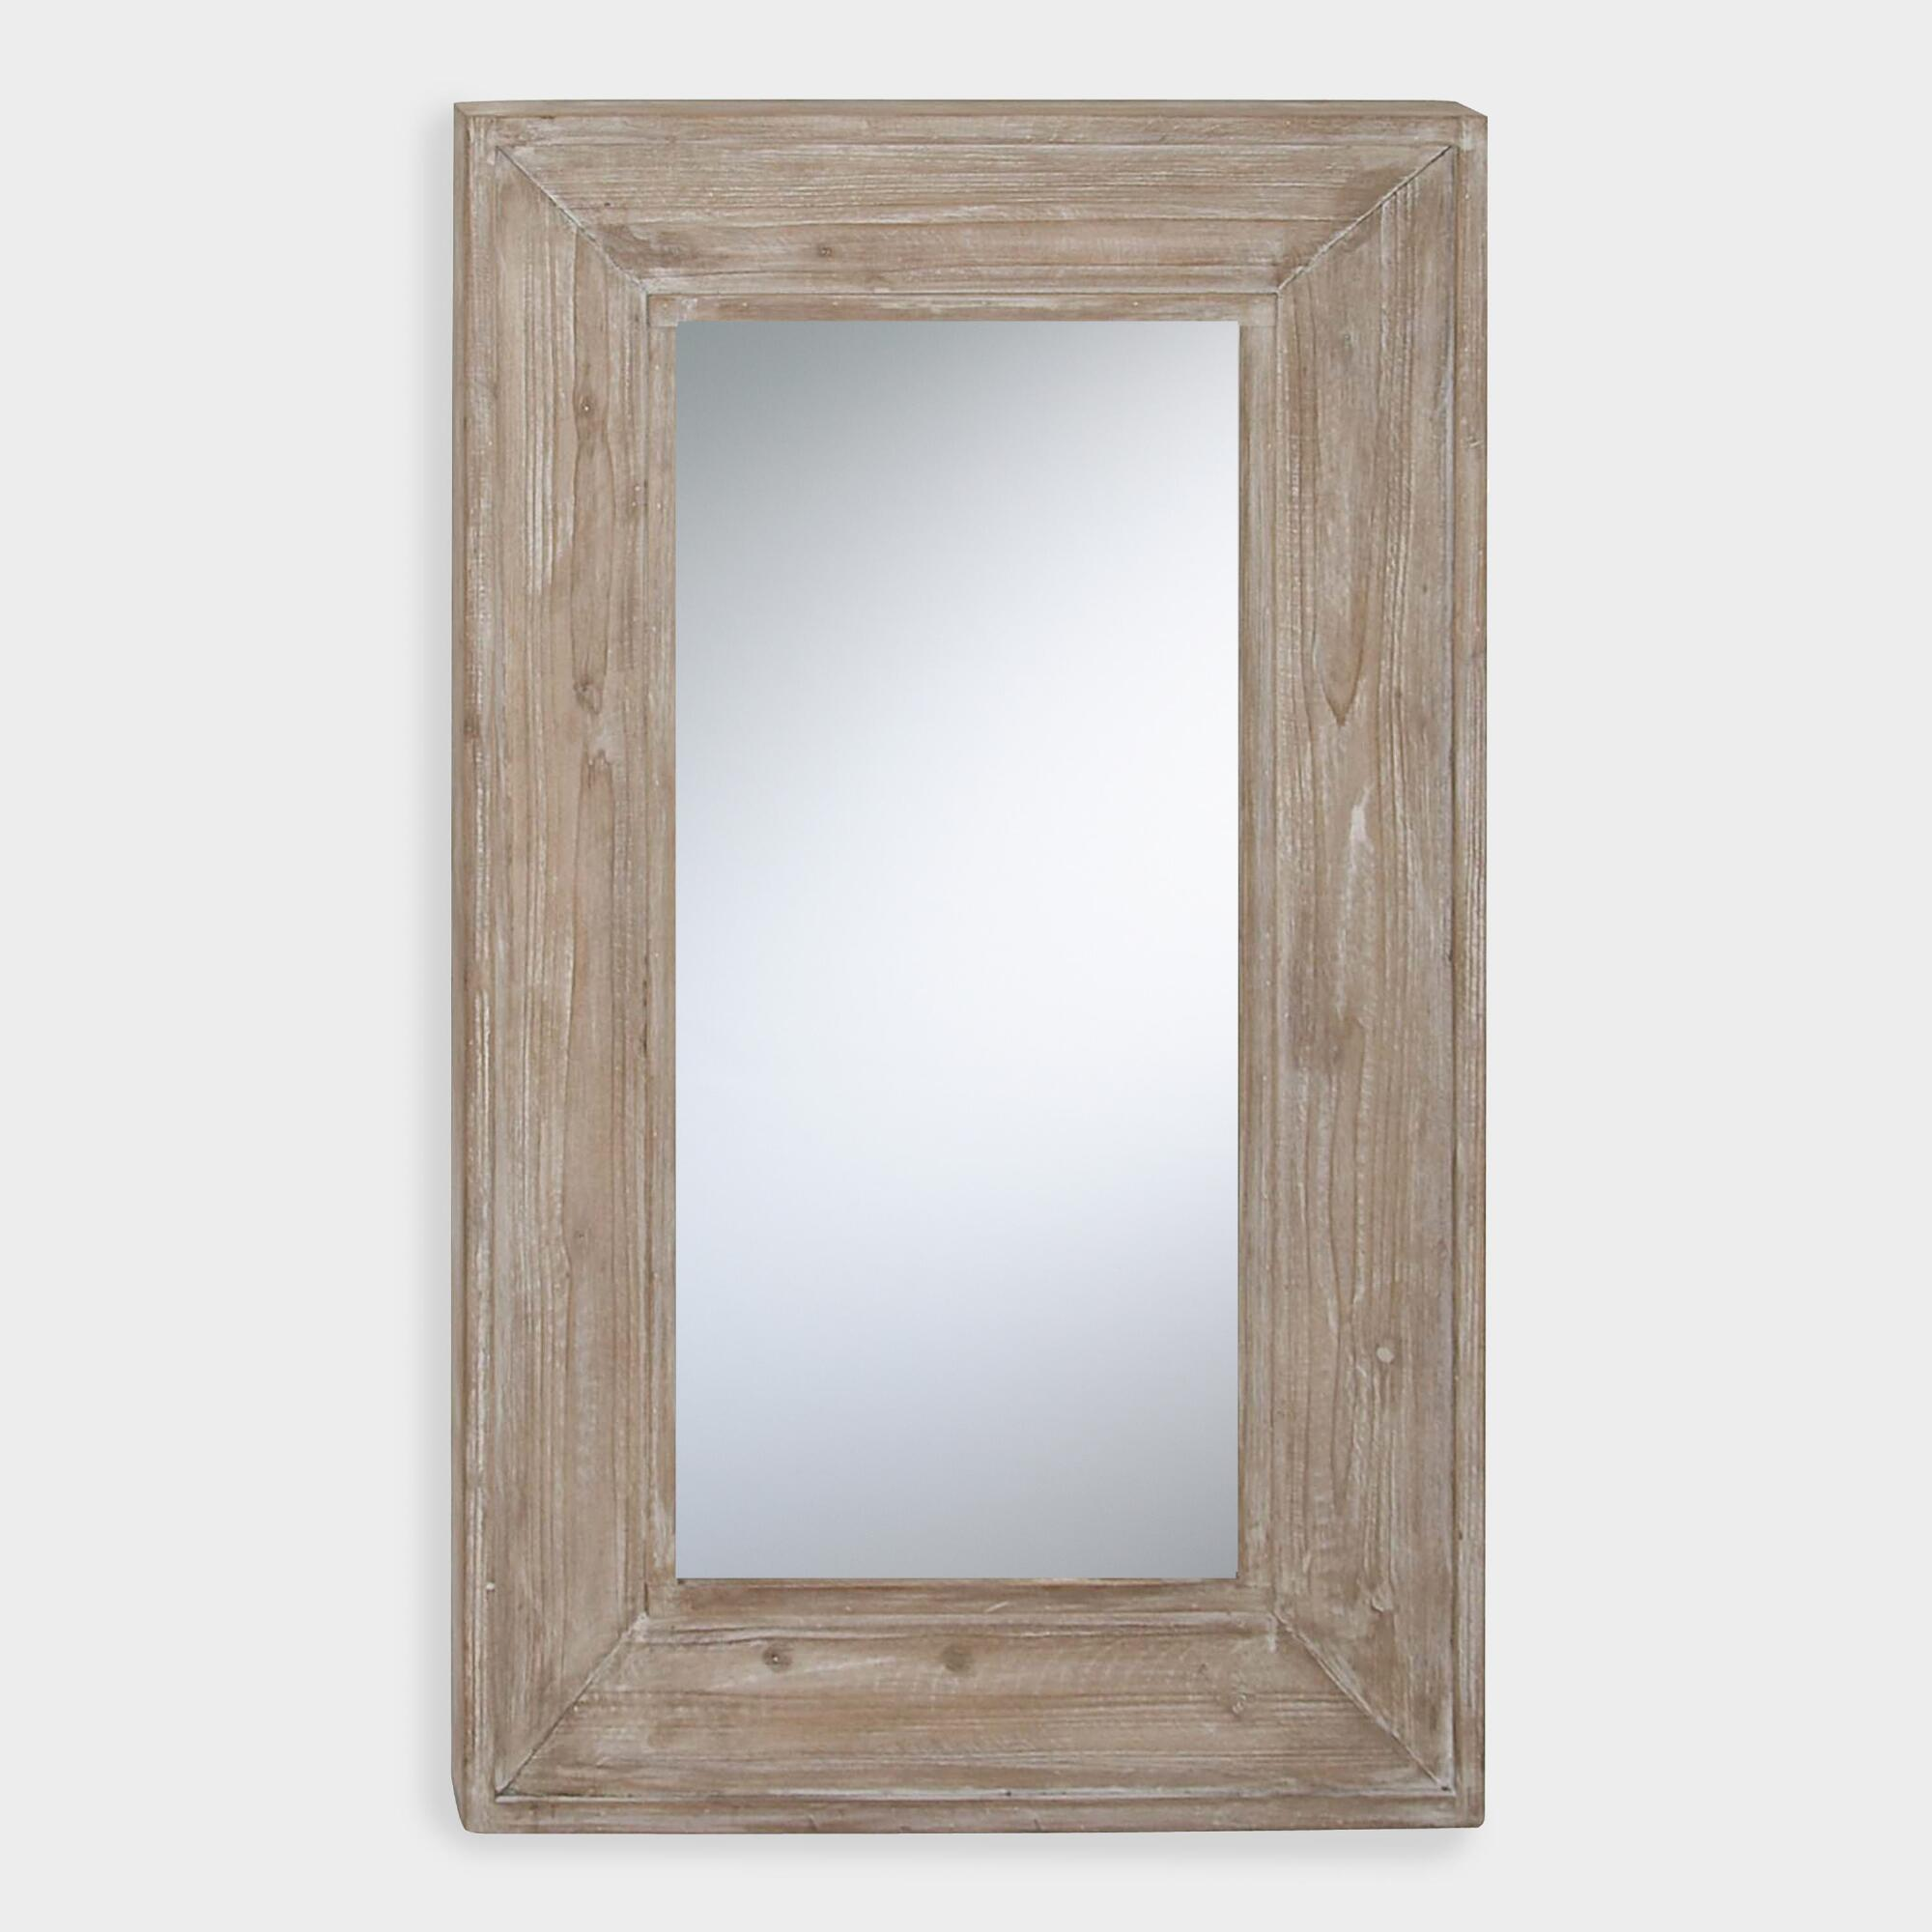 Rectangular Rustic Wood Wall Mirror by World Market